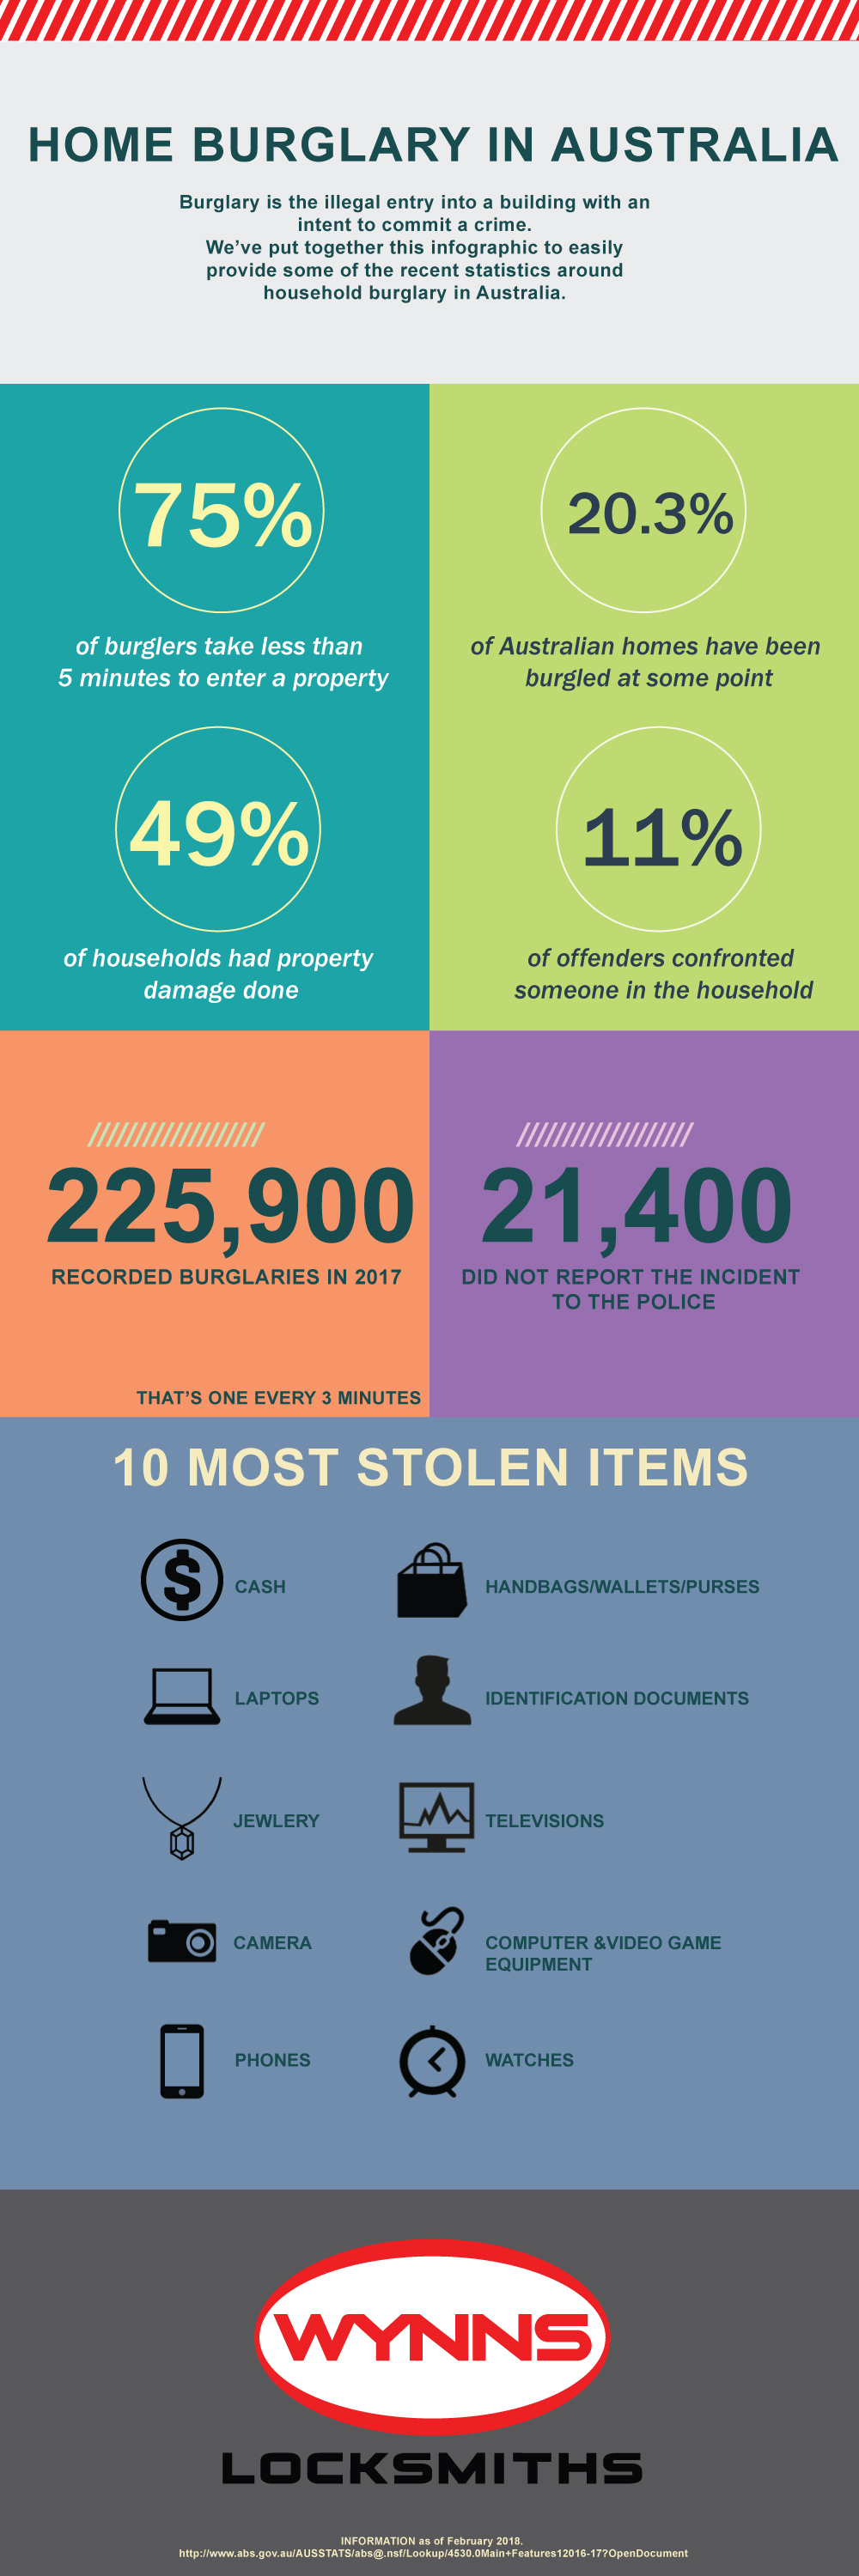 Home Burglary Australia - Infographic